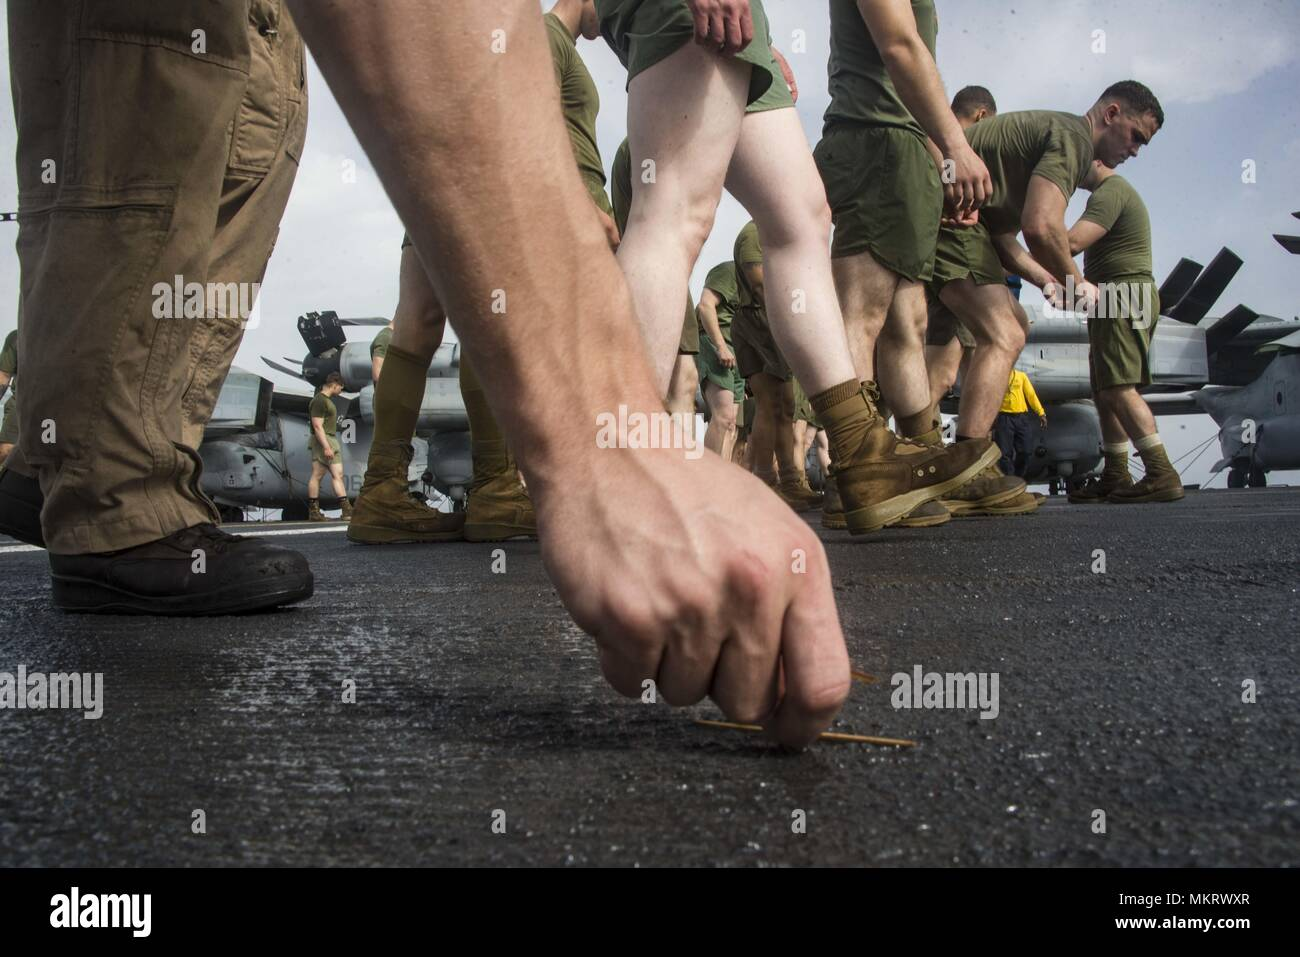 180507-N-ZG607-00112 U.S. 5TH FLEET AREA OF OPERATIONS (May 7, 2018) Marines assigned to the 26th Marine Expeditionary Unit perform a foreign object damage walk down on the flight deck aboard the Wasp-class amphibious assault ship USS Iwo Jima (LHD 7), May 7, 2018, May 7, 2018. Iwo Jima, homeported in Mayport, Fla. is deployed to the U.S. 5th Fleet area of operations in support of maritime security operations to reassure allies and partners, and preserve the freedom of navigation and the free flow of commerce in the region. (U.S. Navy photo by Mass Communication Specialist Seaman Dominick A. C Stock Photo